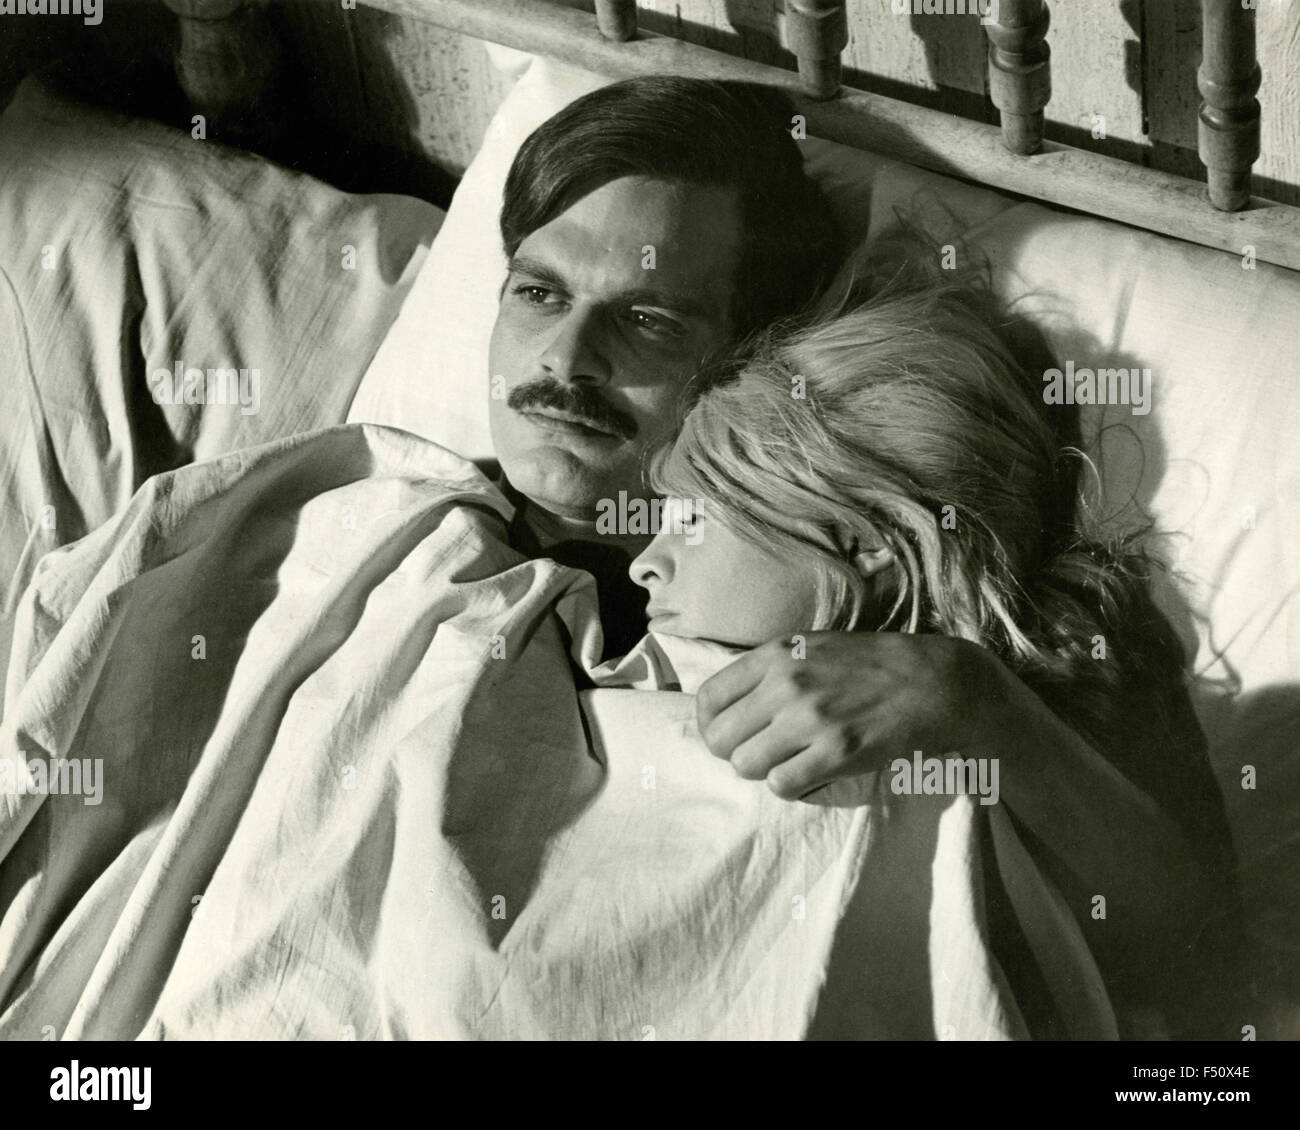 The actors Omar Sharif and Julie Christie in a scene from the movie 'Doctor Zhivago', USA - Stock Image